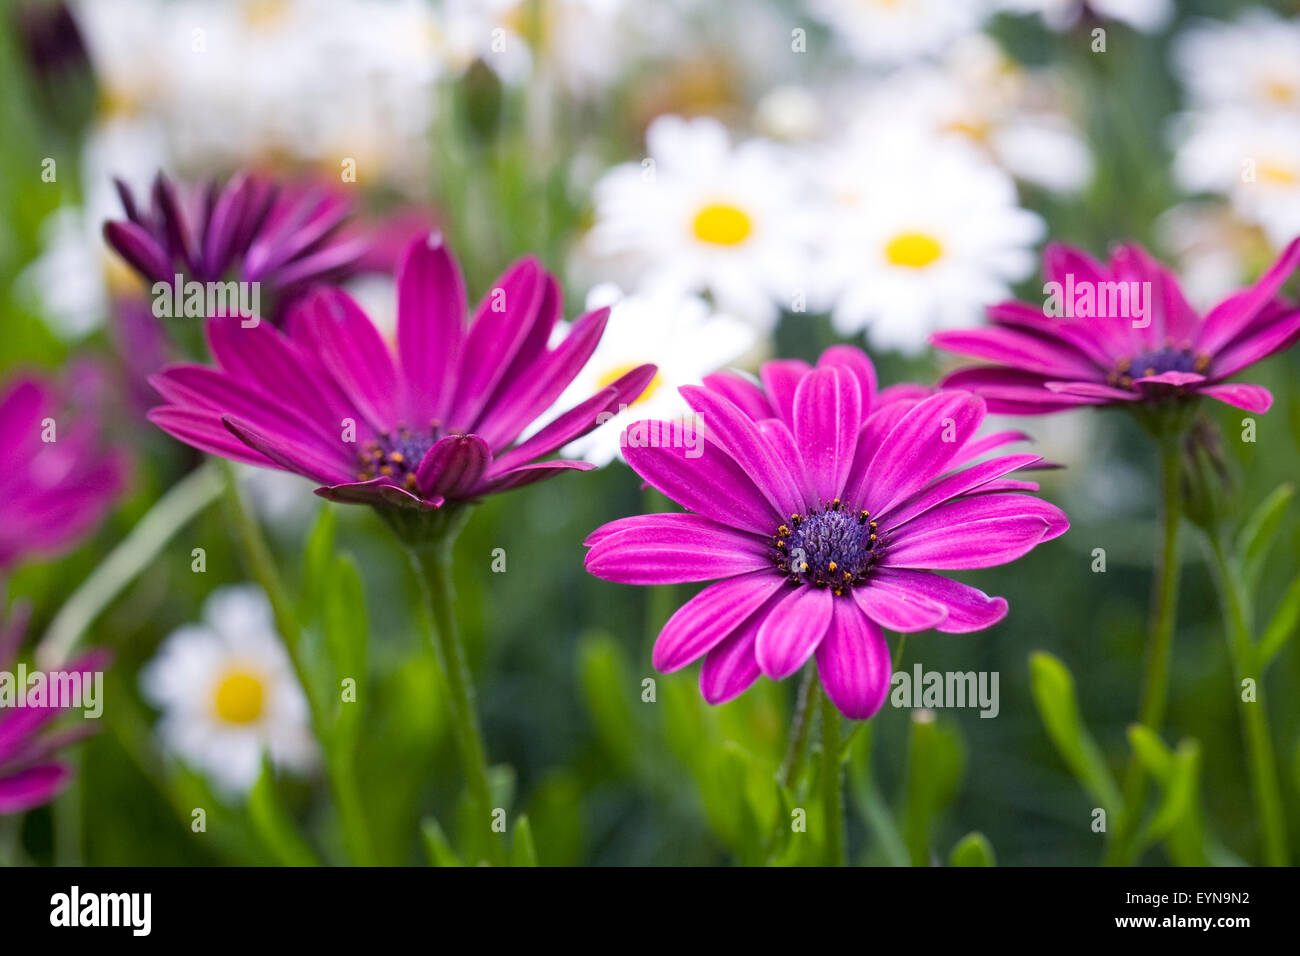 Magenta pink Osteospermum flowers in the garden. Cape daisy. African daisy. - Stock Image